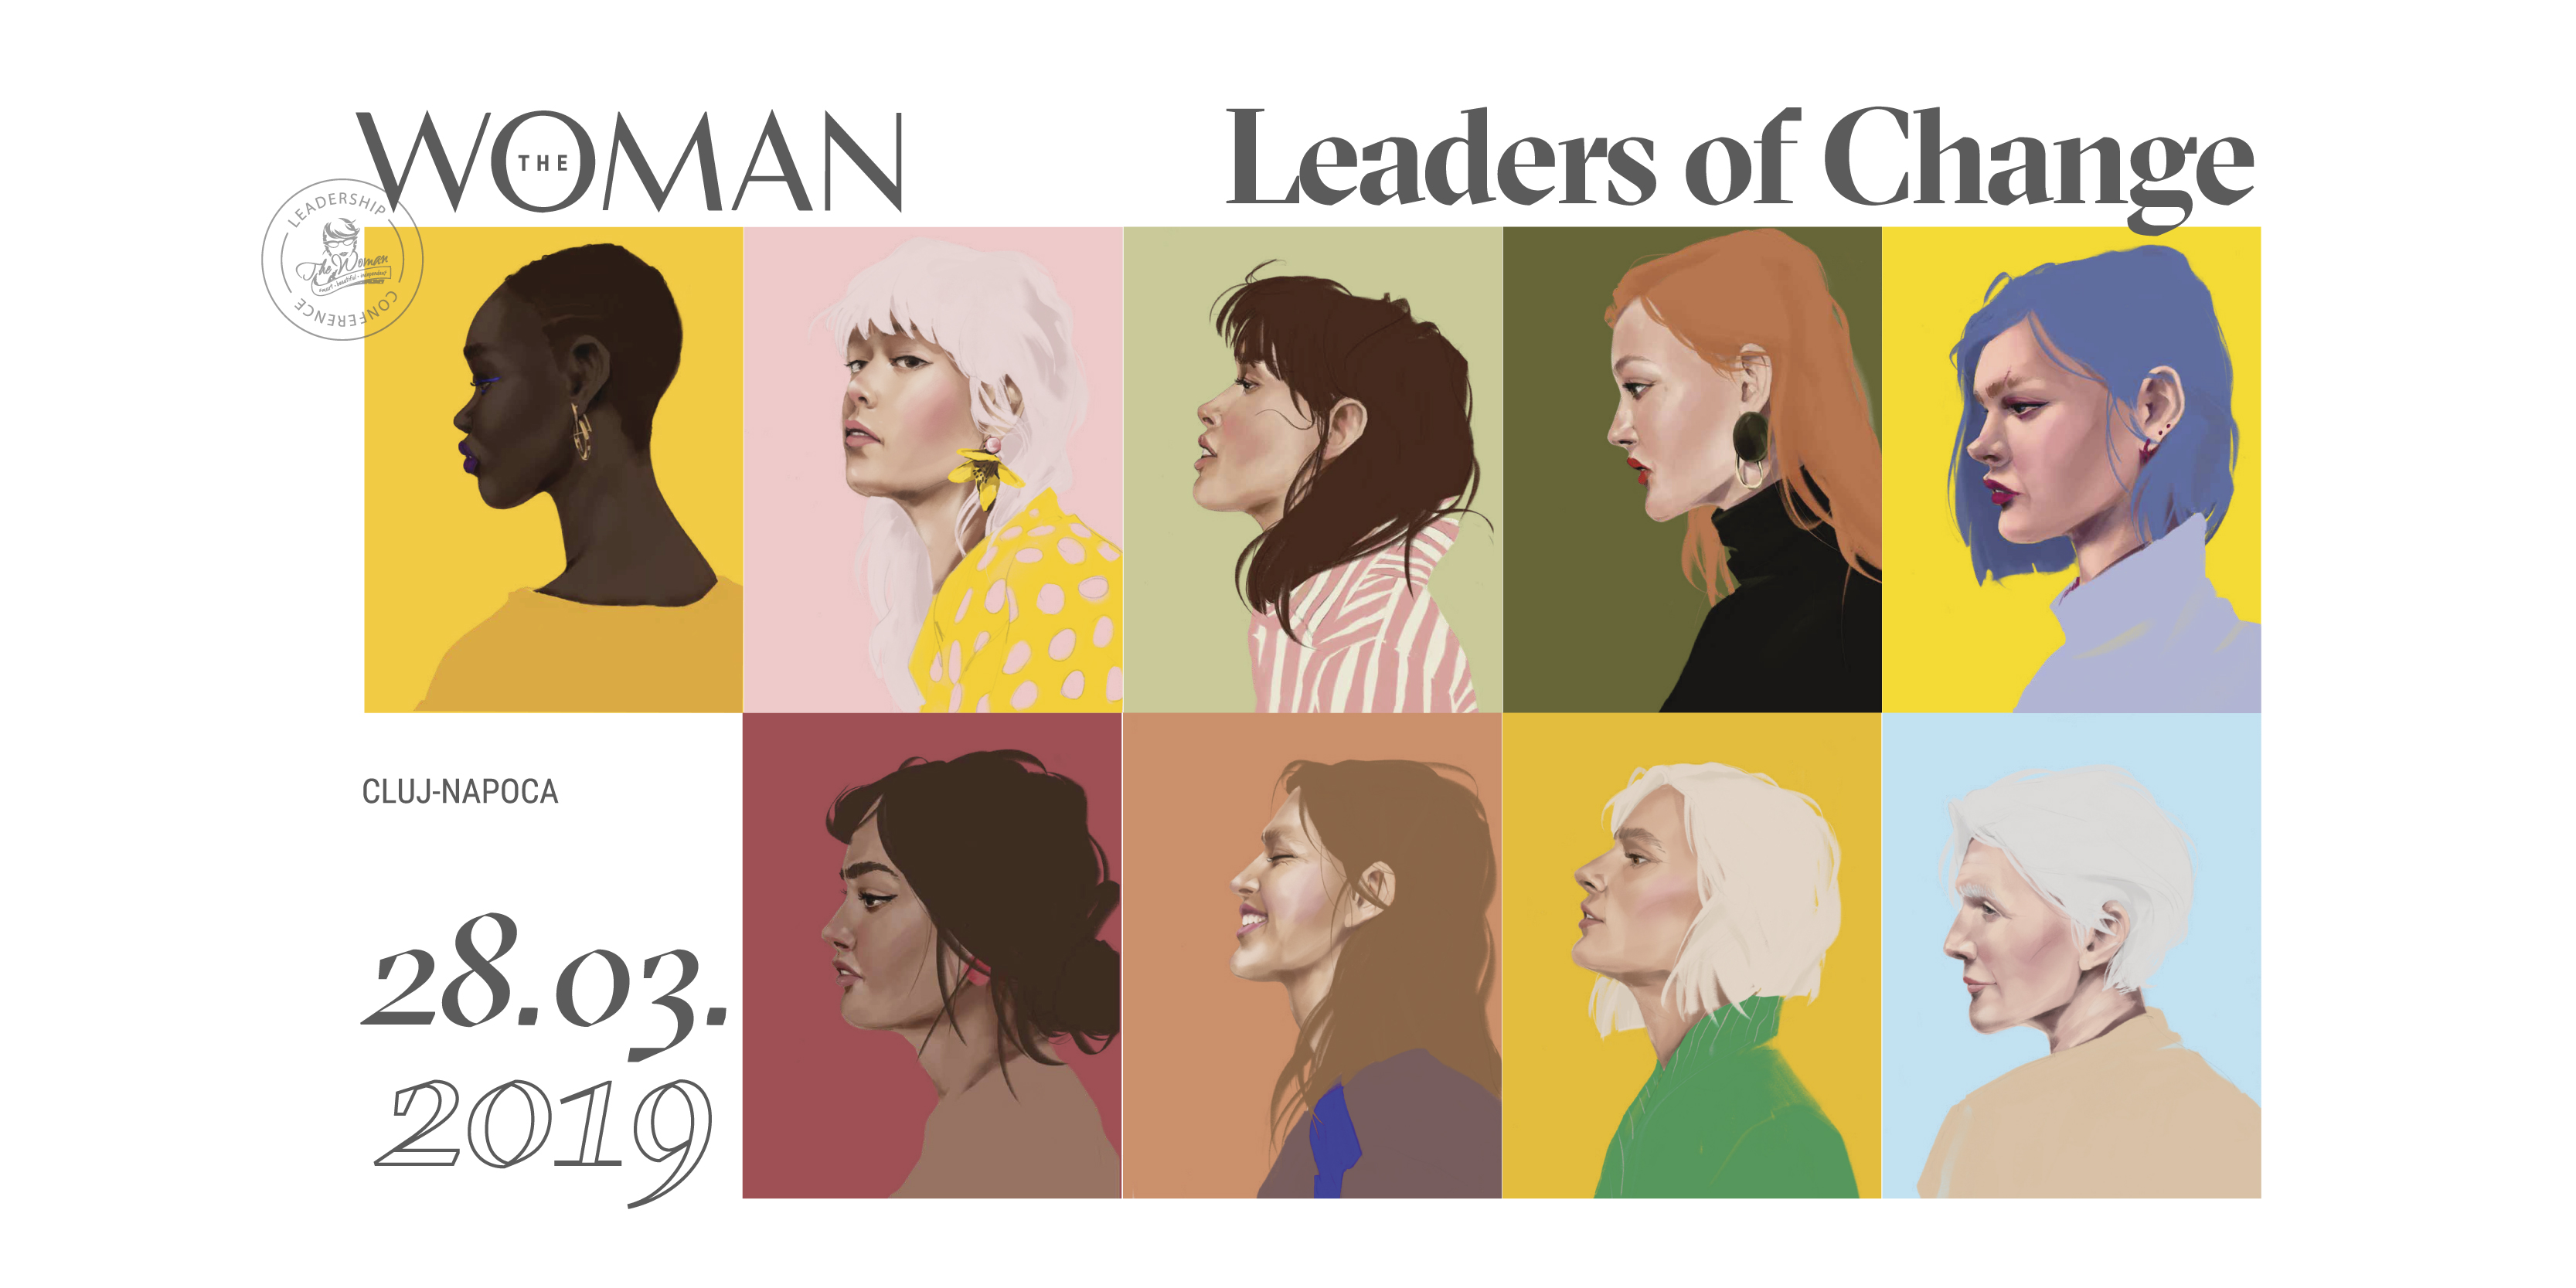 The Woman 19